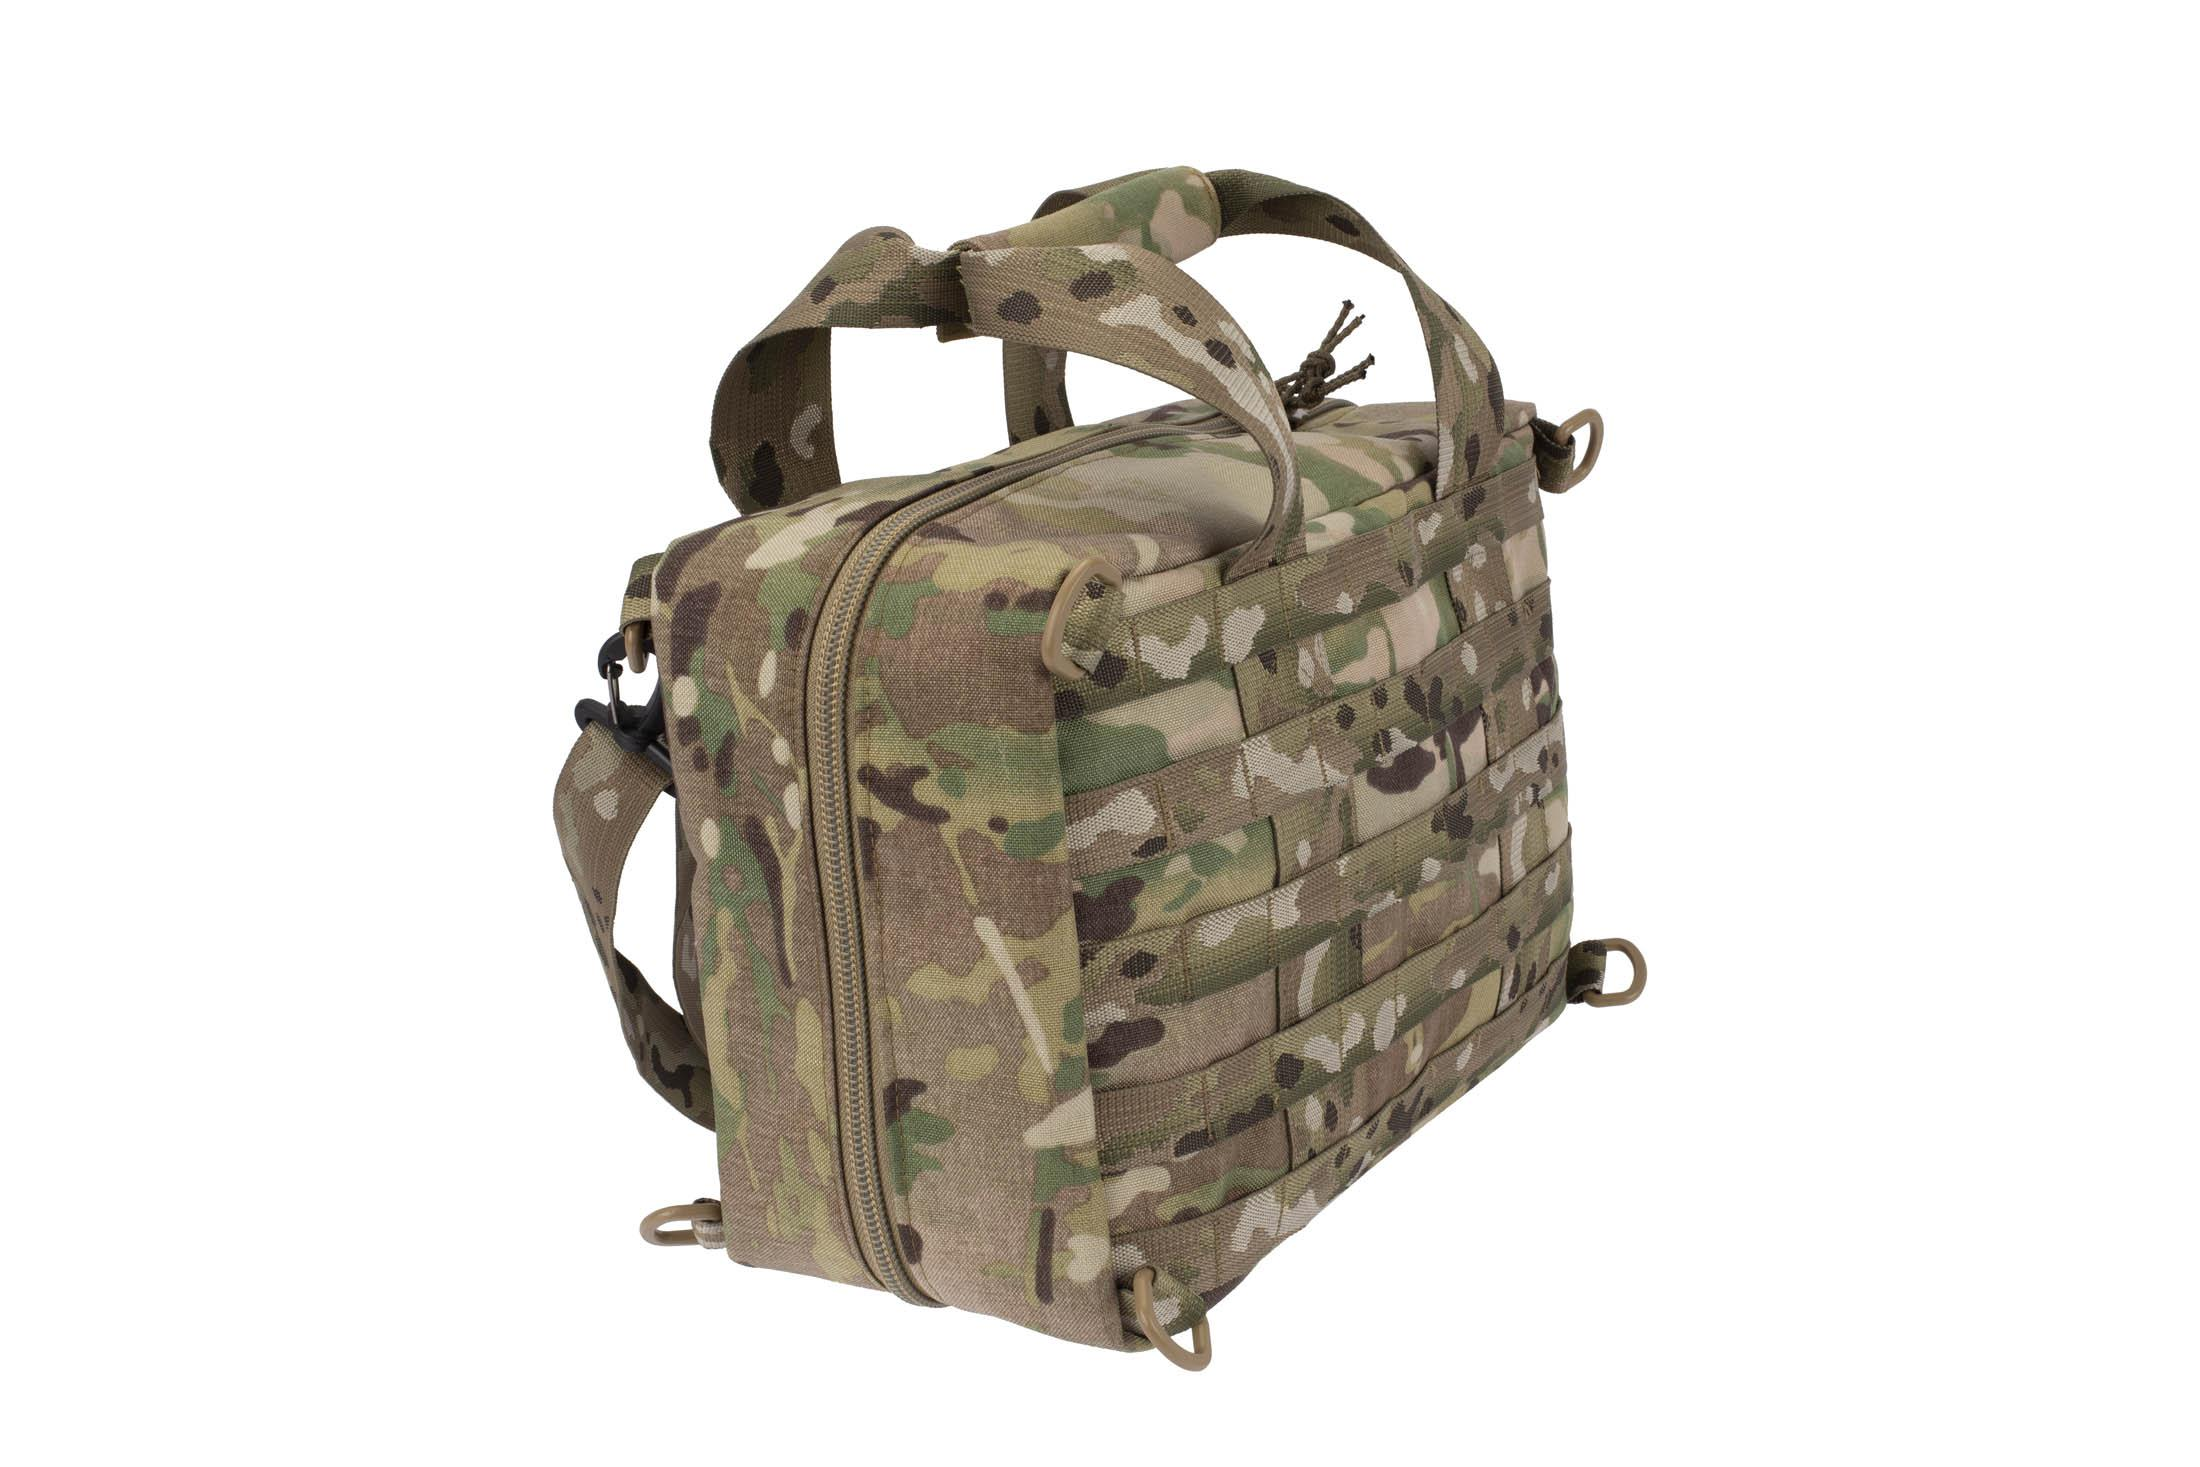 High Speed Gear MultiCam Range Go Bag built from heavy duty 1000D cordura with reinforced bottom for self standing